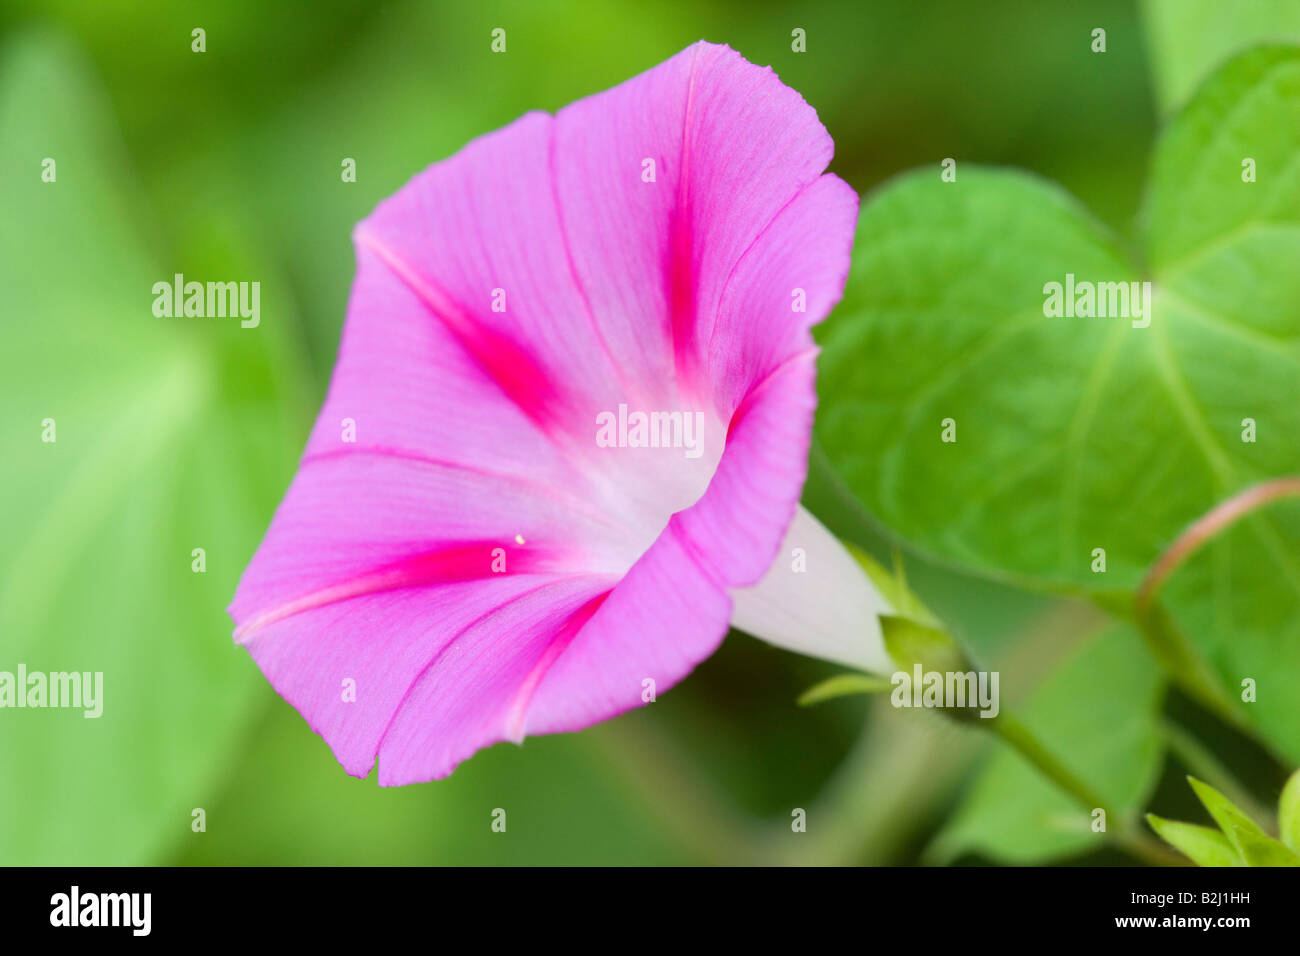 bindweed Convolvulaceae morning glory family bloom blooming - Stock Image